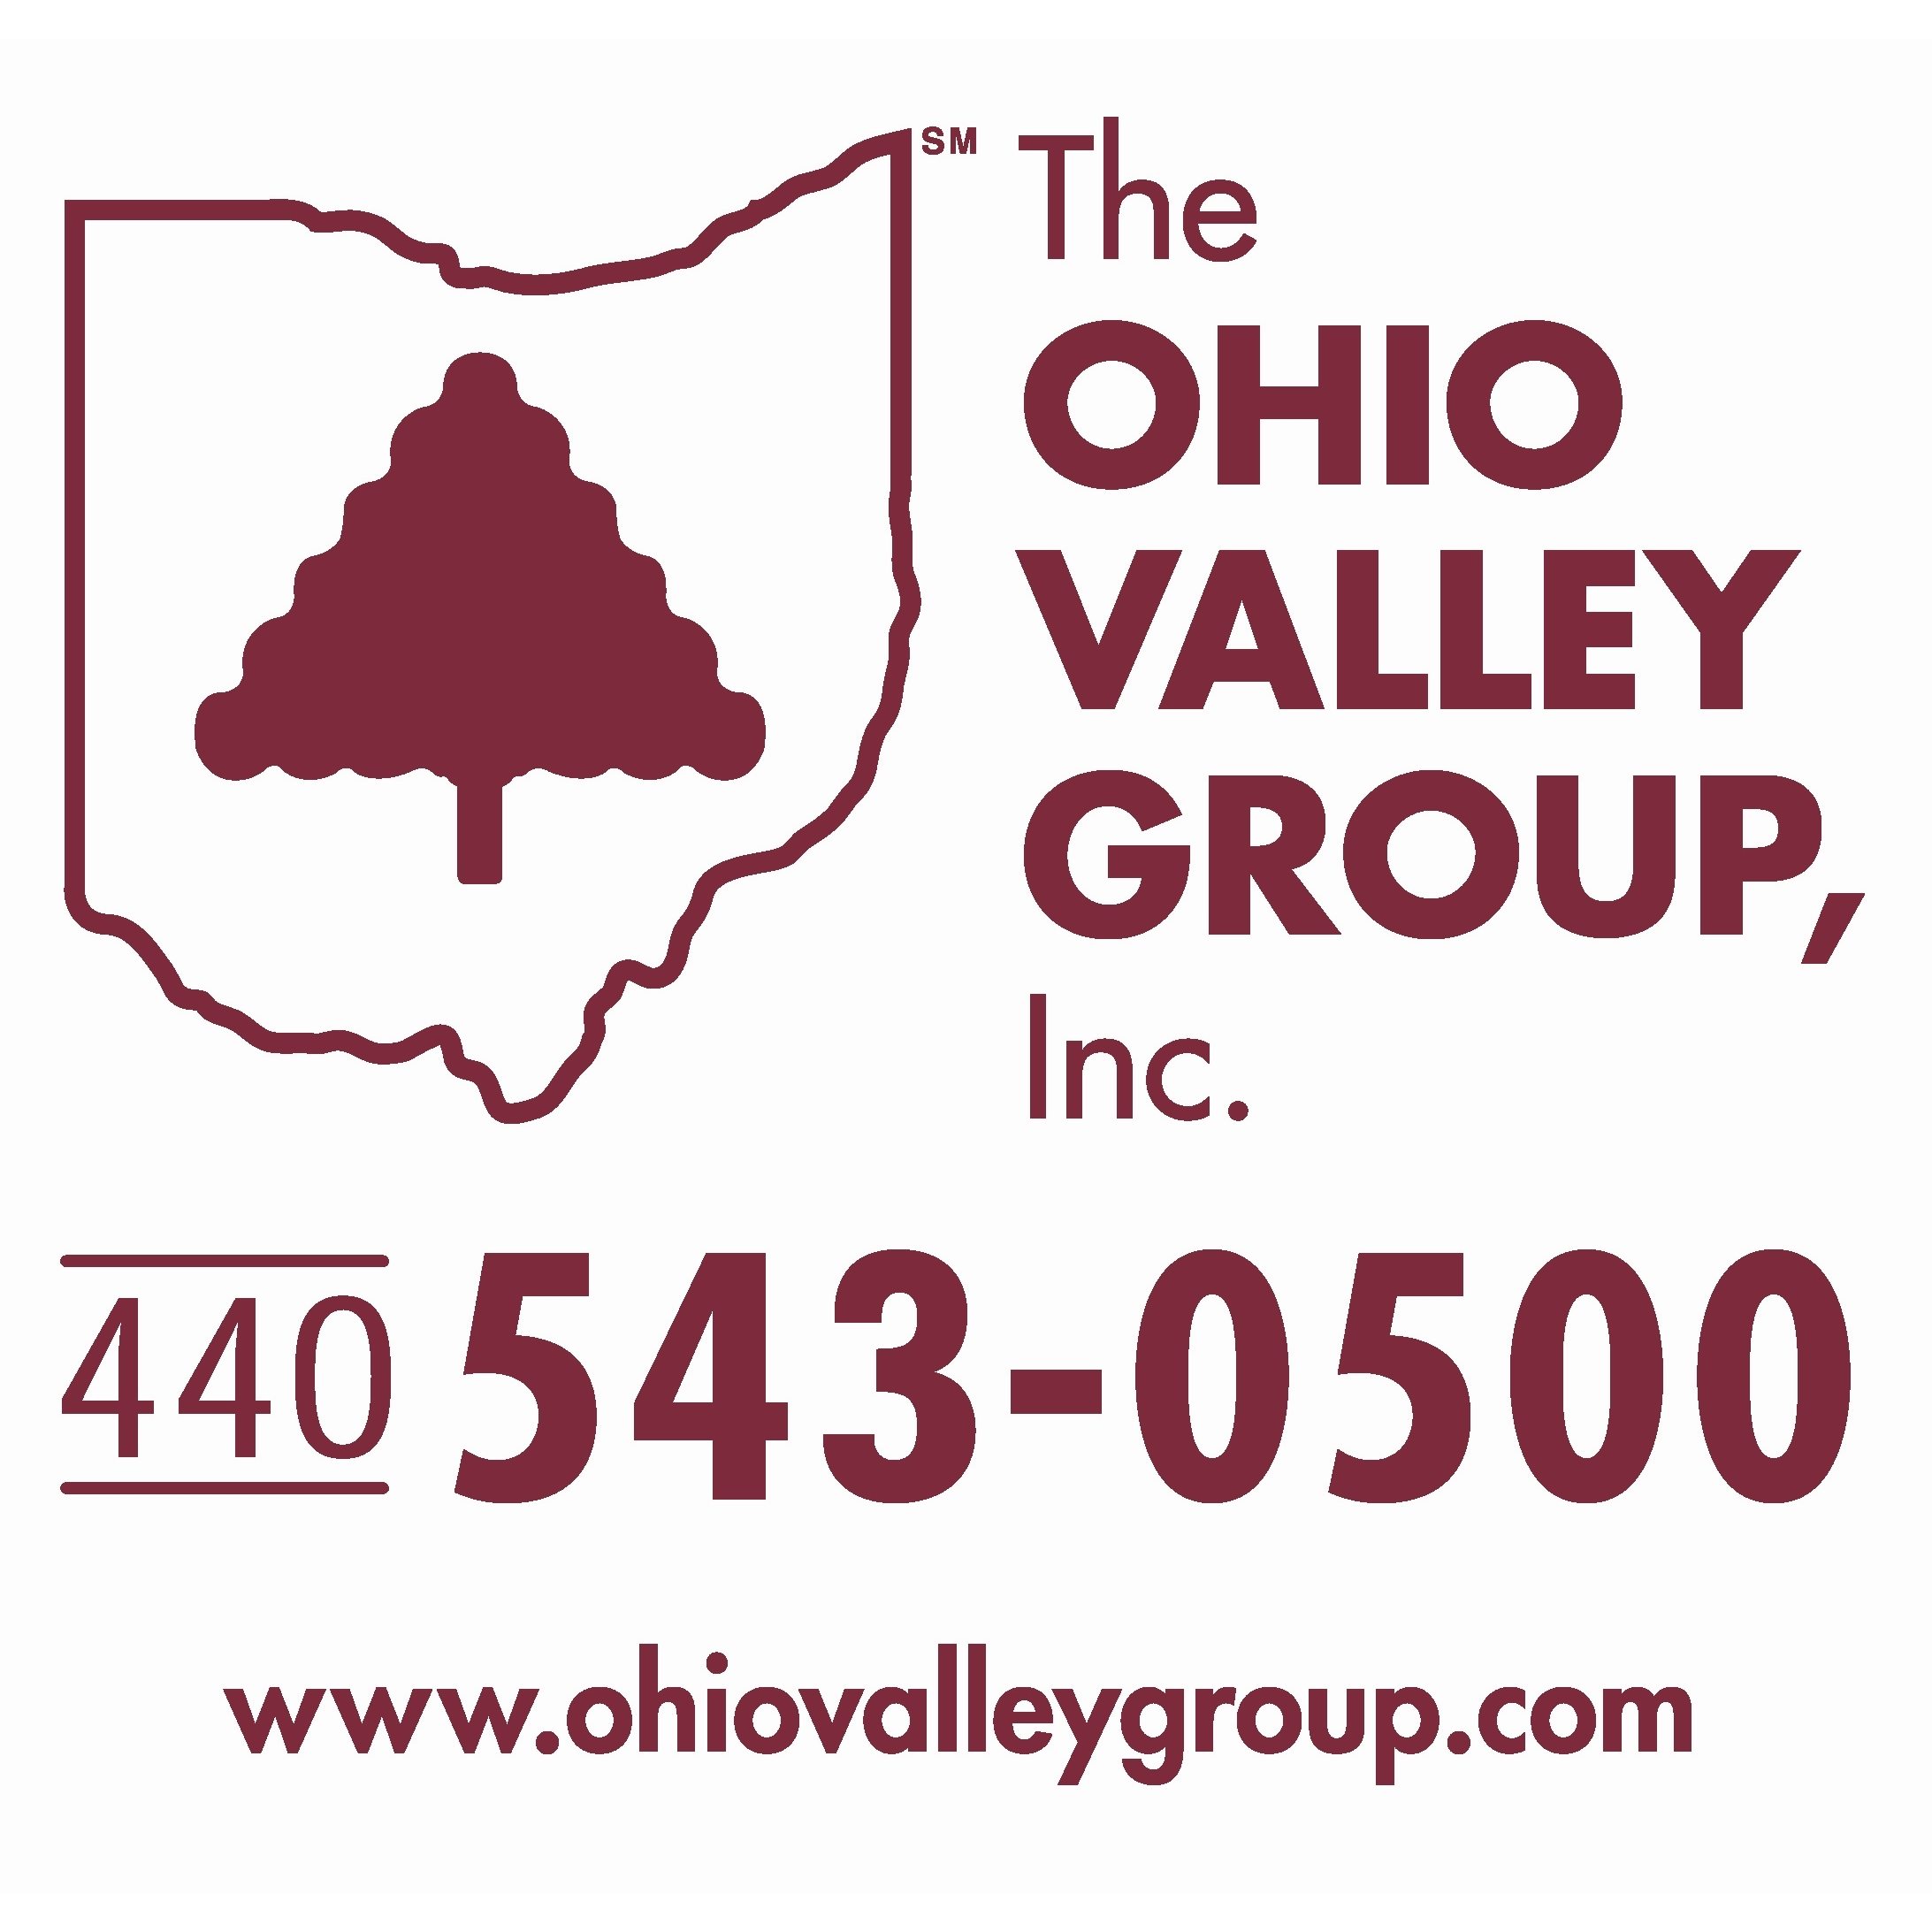 Ohio Valley Group